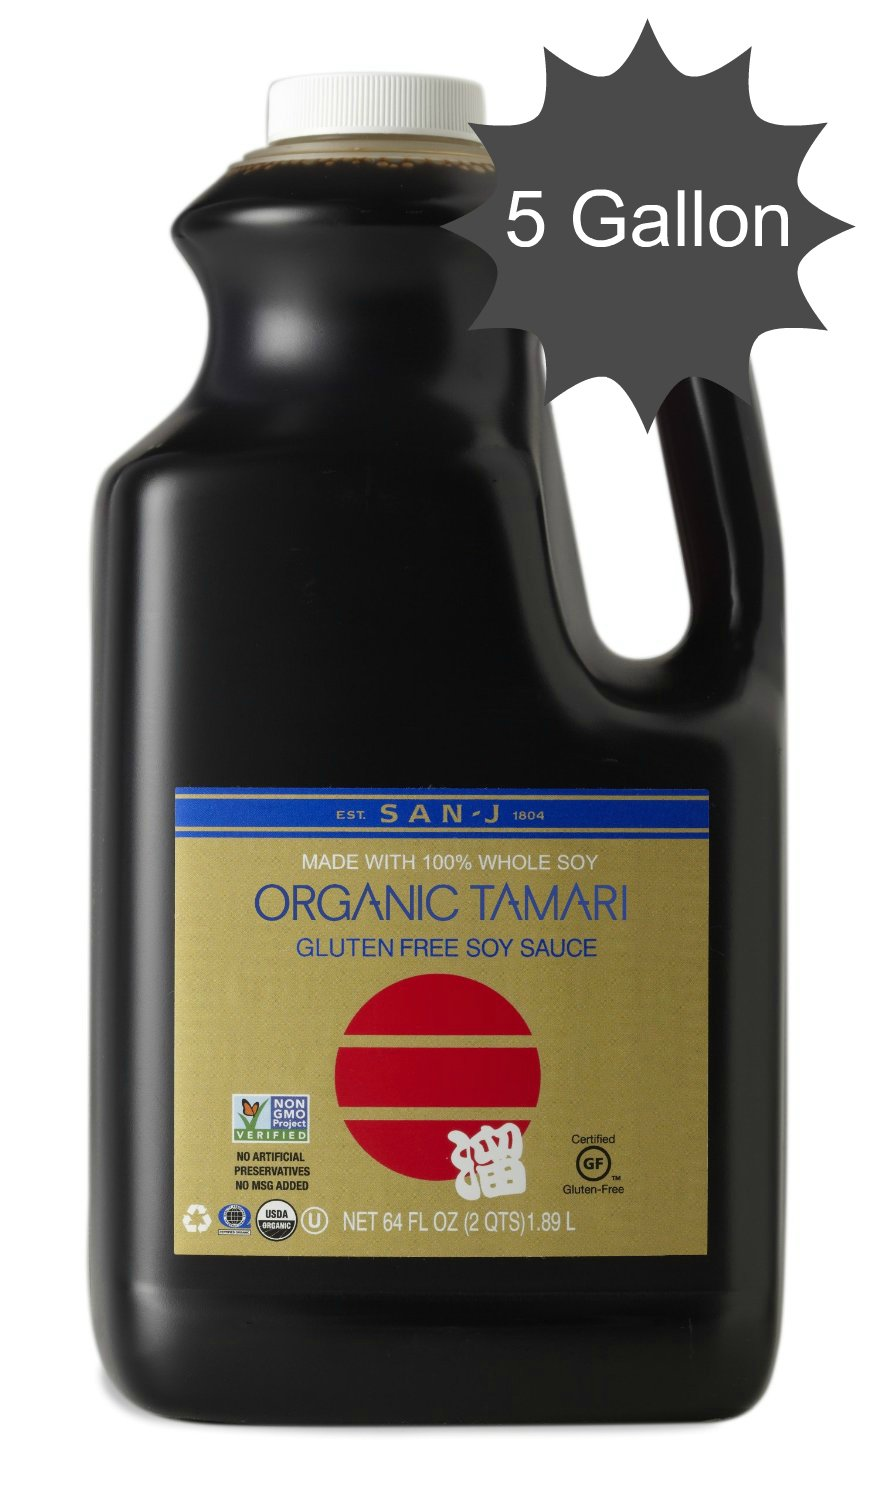 San J Organic Gold Tamari Wheat Free Soy Sauce - 5 Gallon by San-J